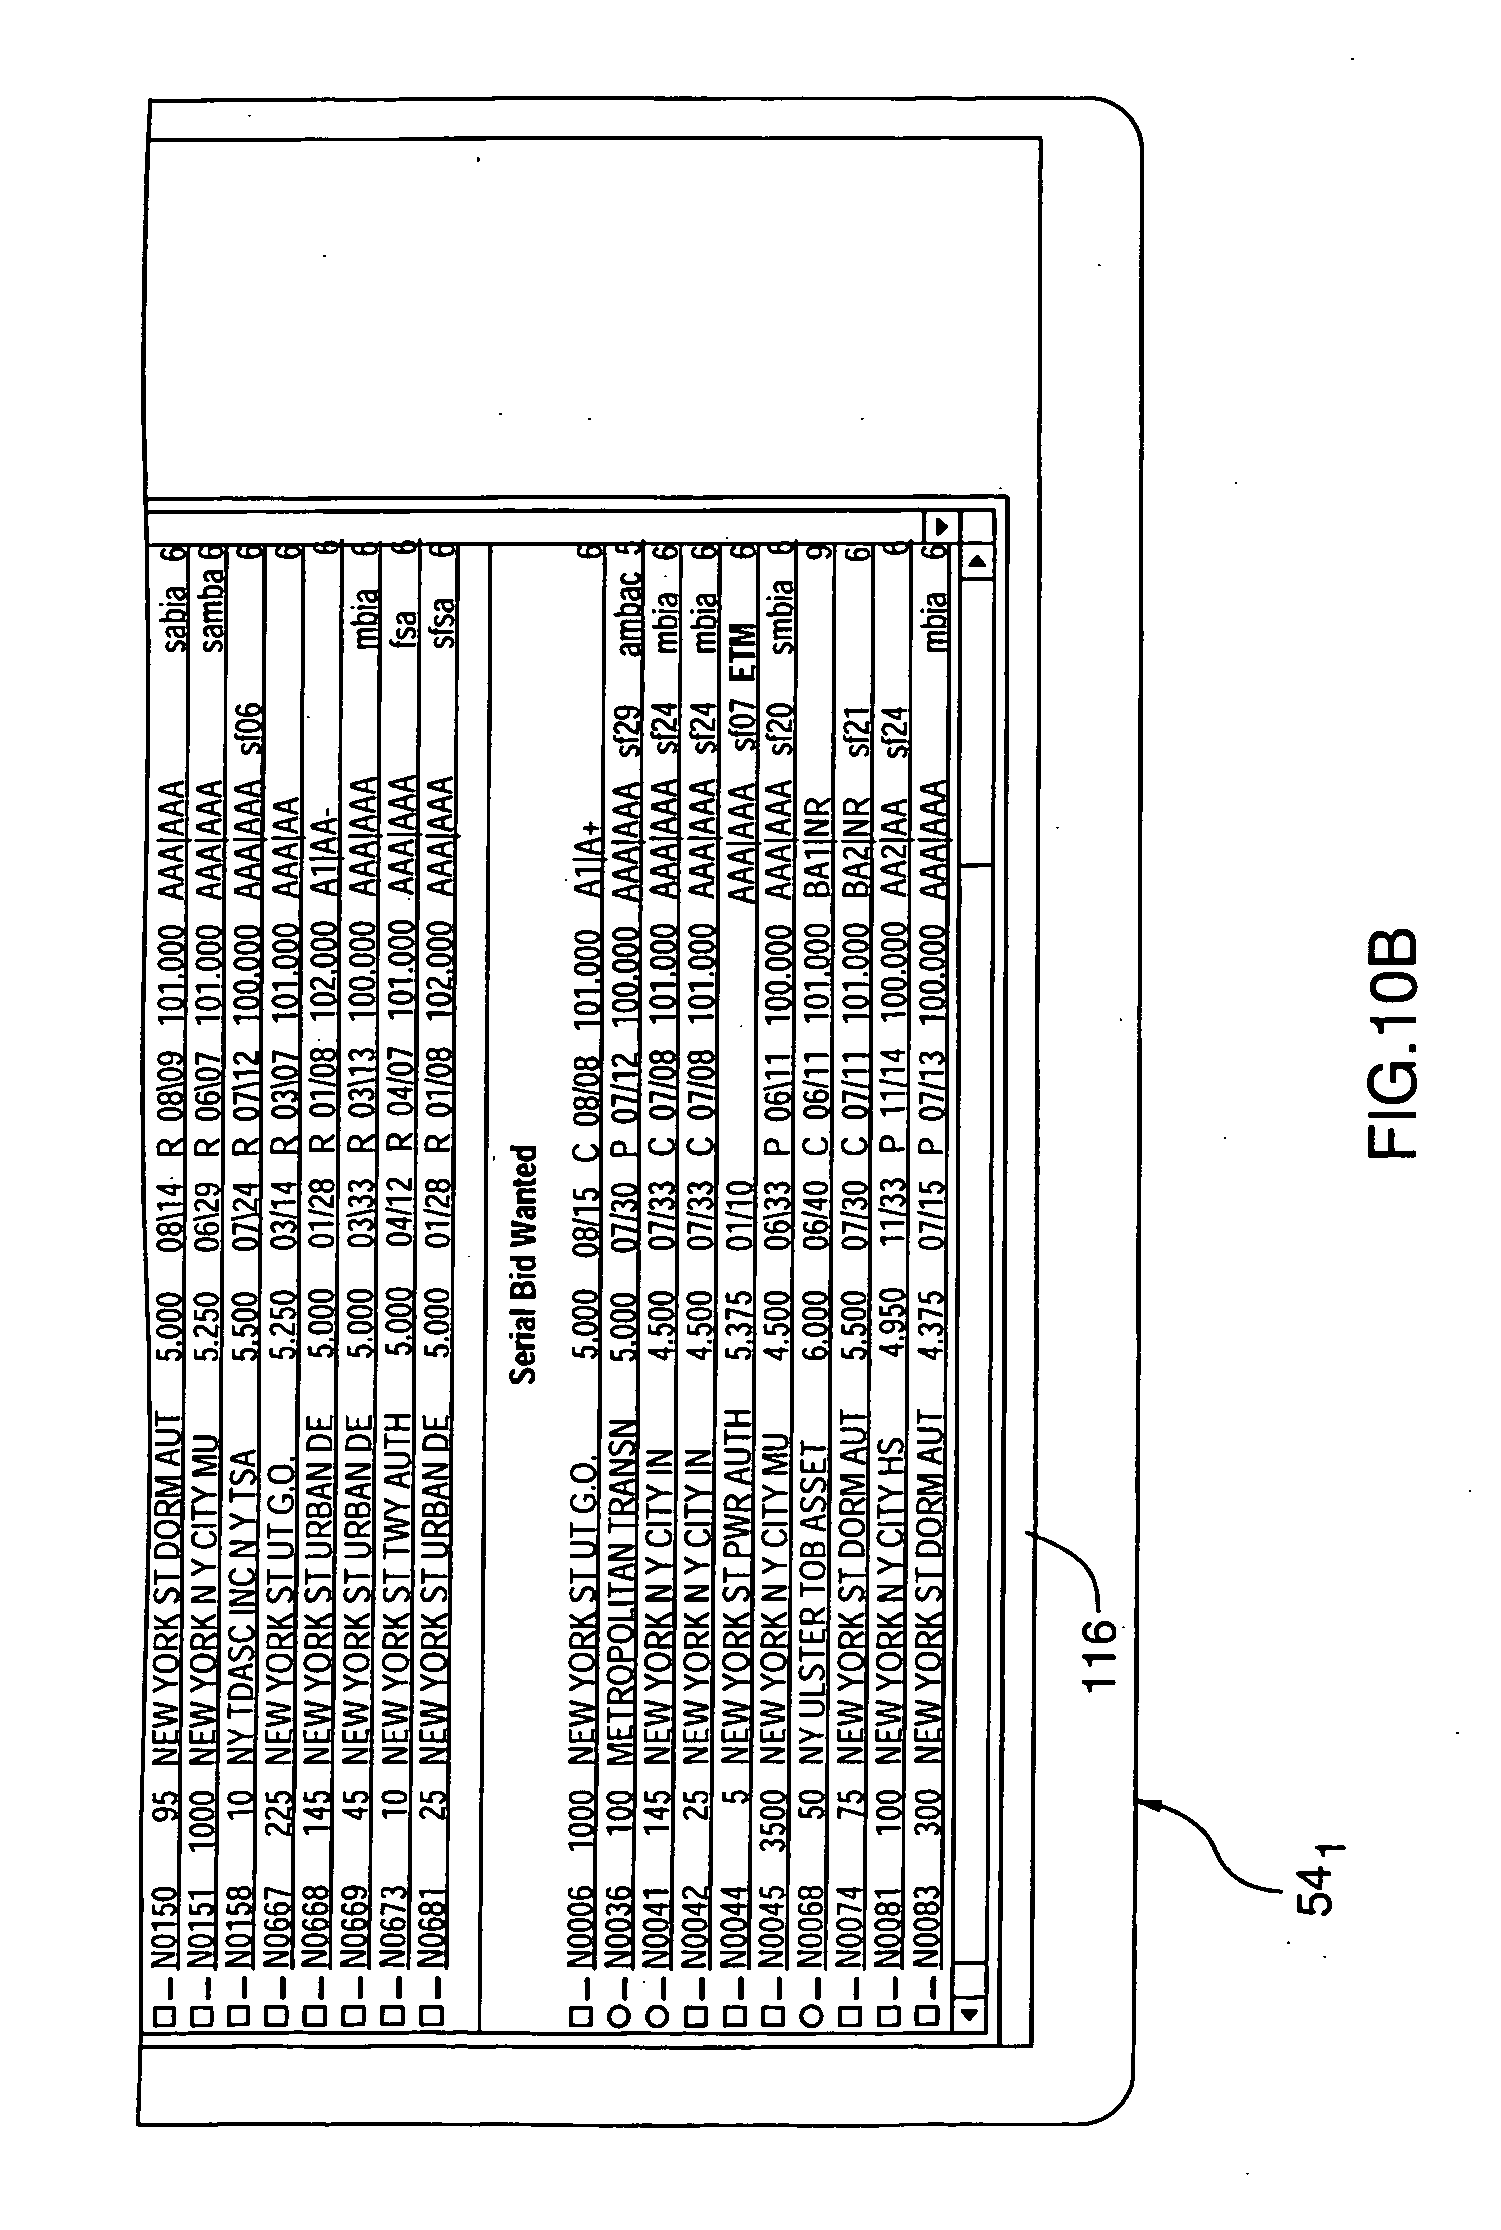 Patent US puter interface for trading